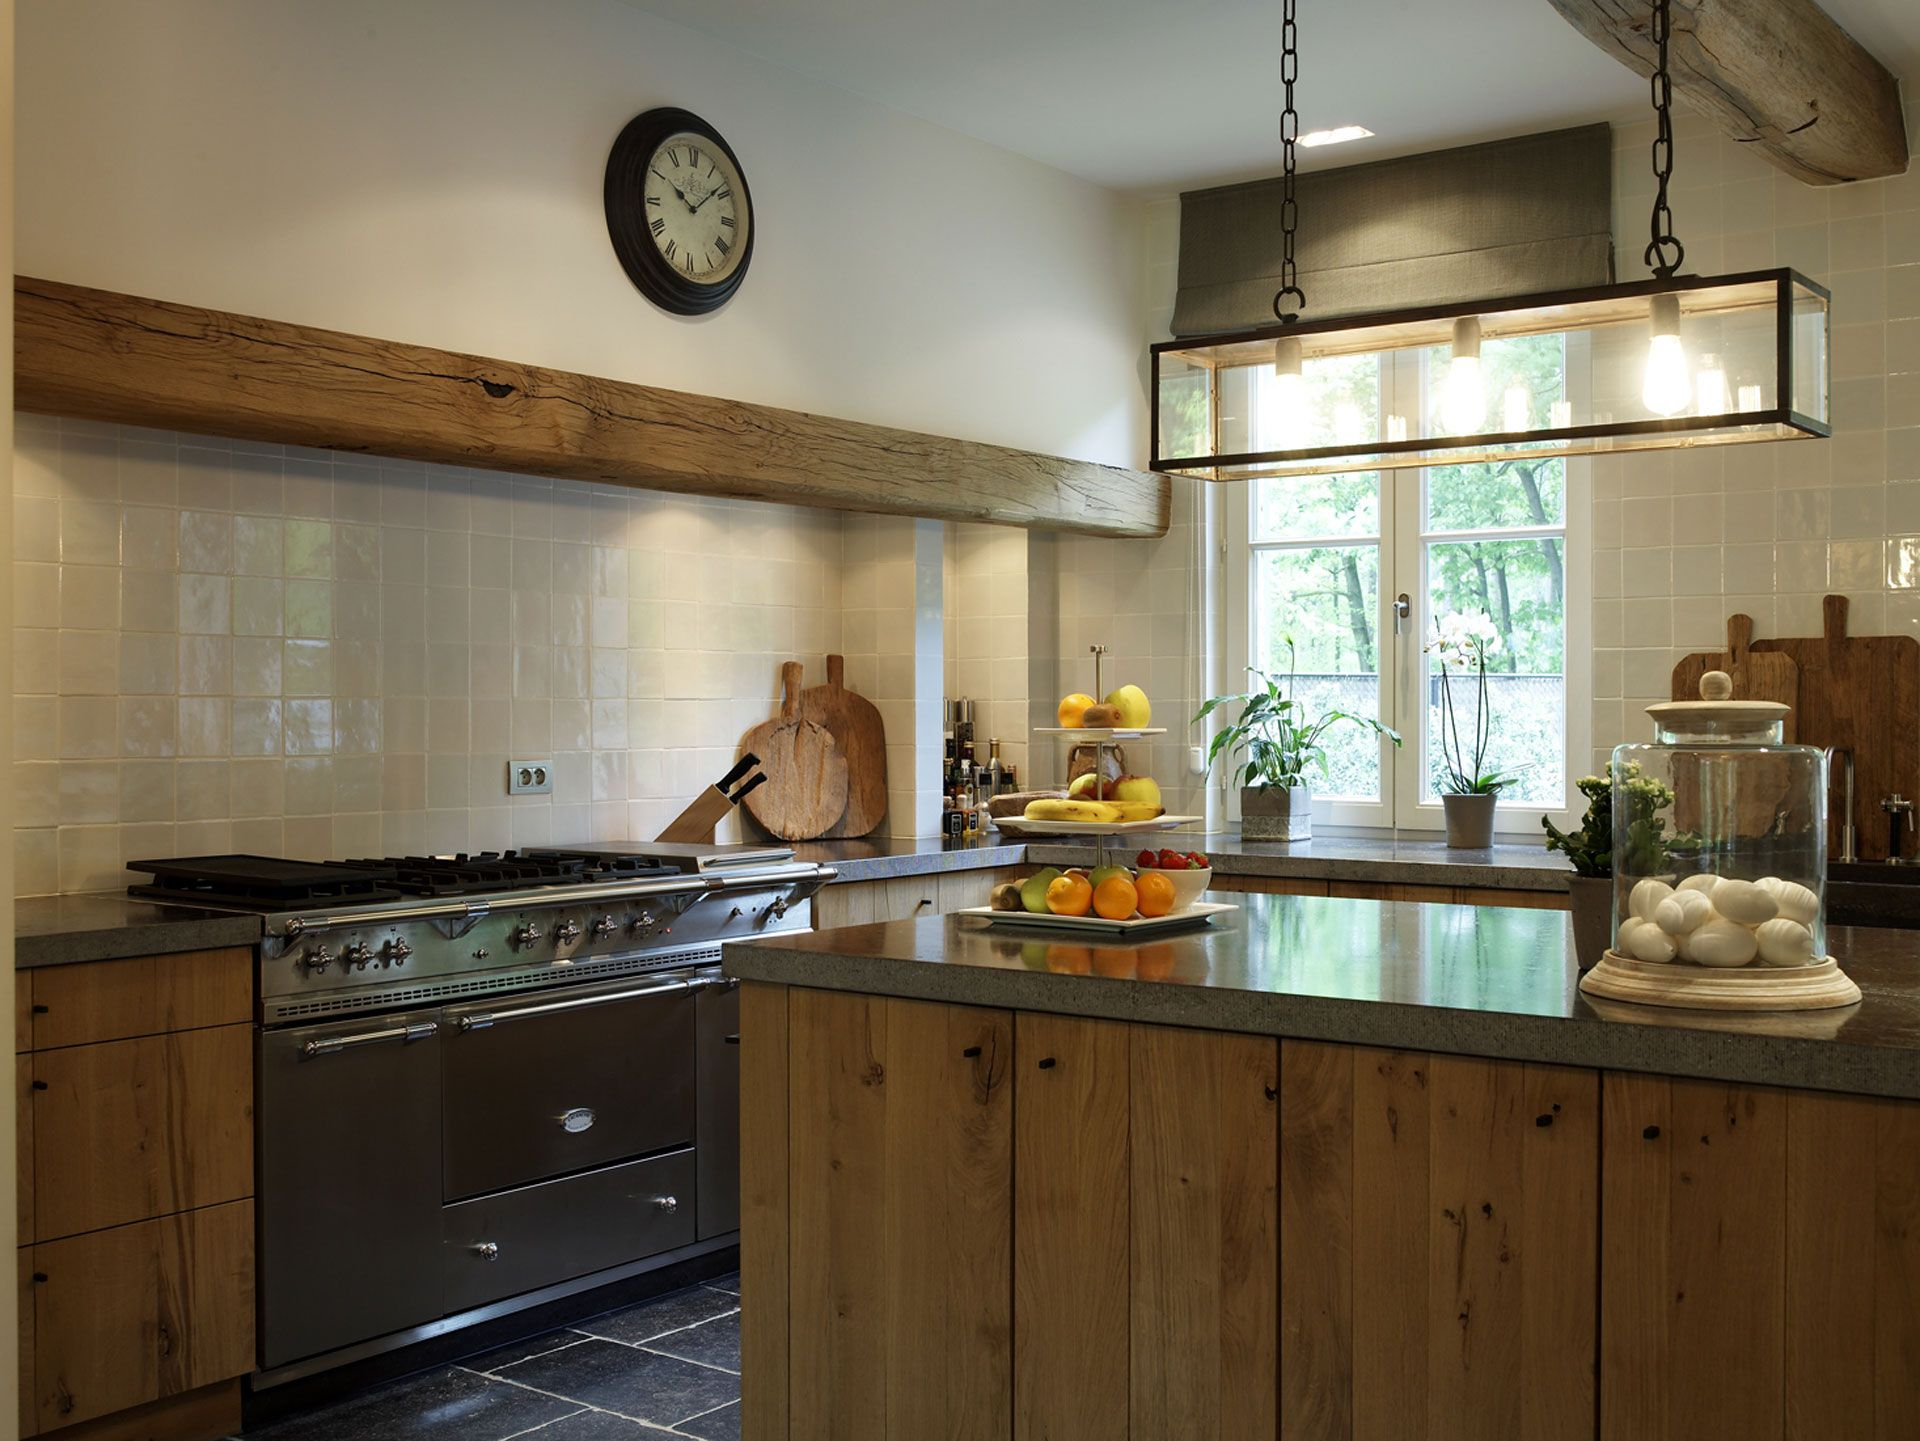 Villabouw sels cottage in the woods kitchen